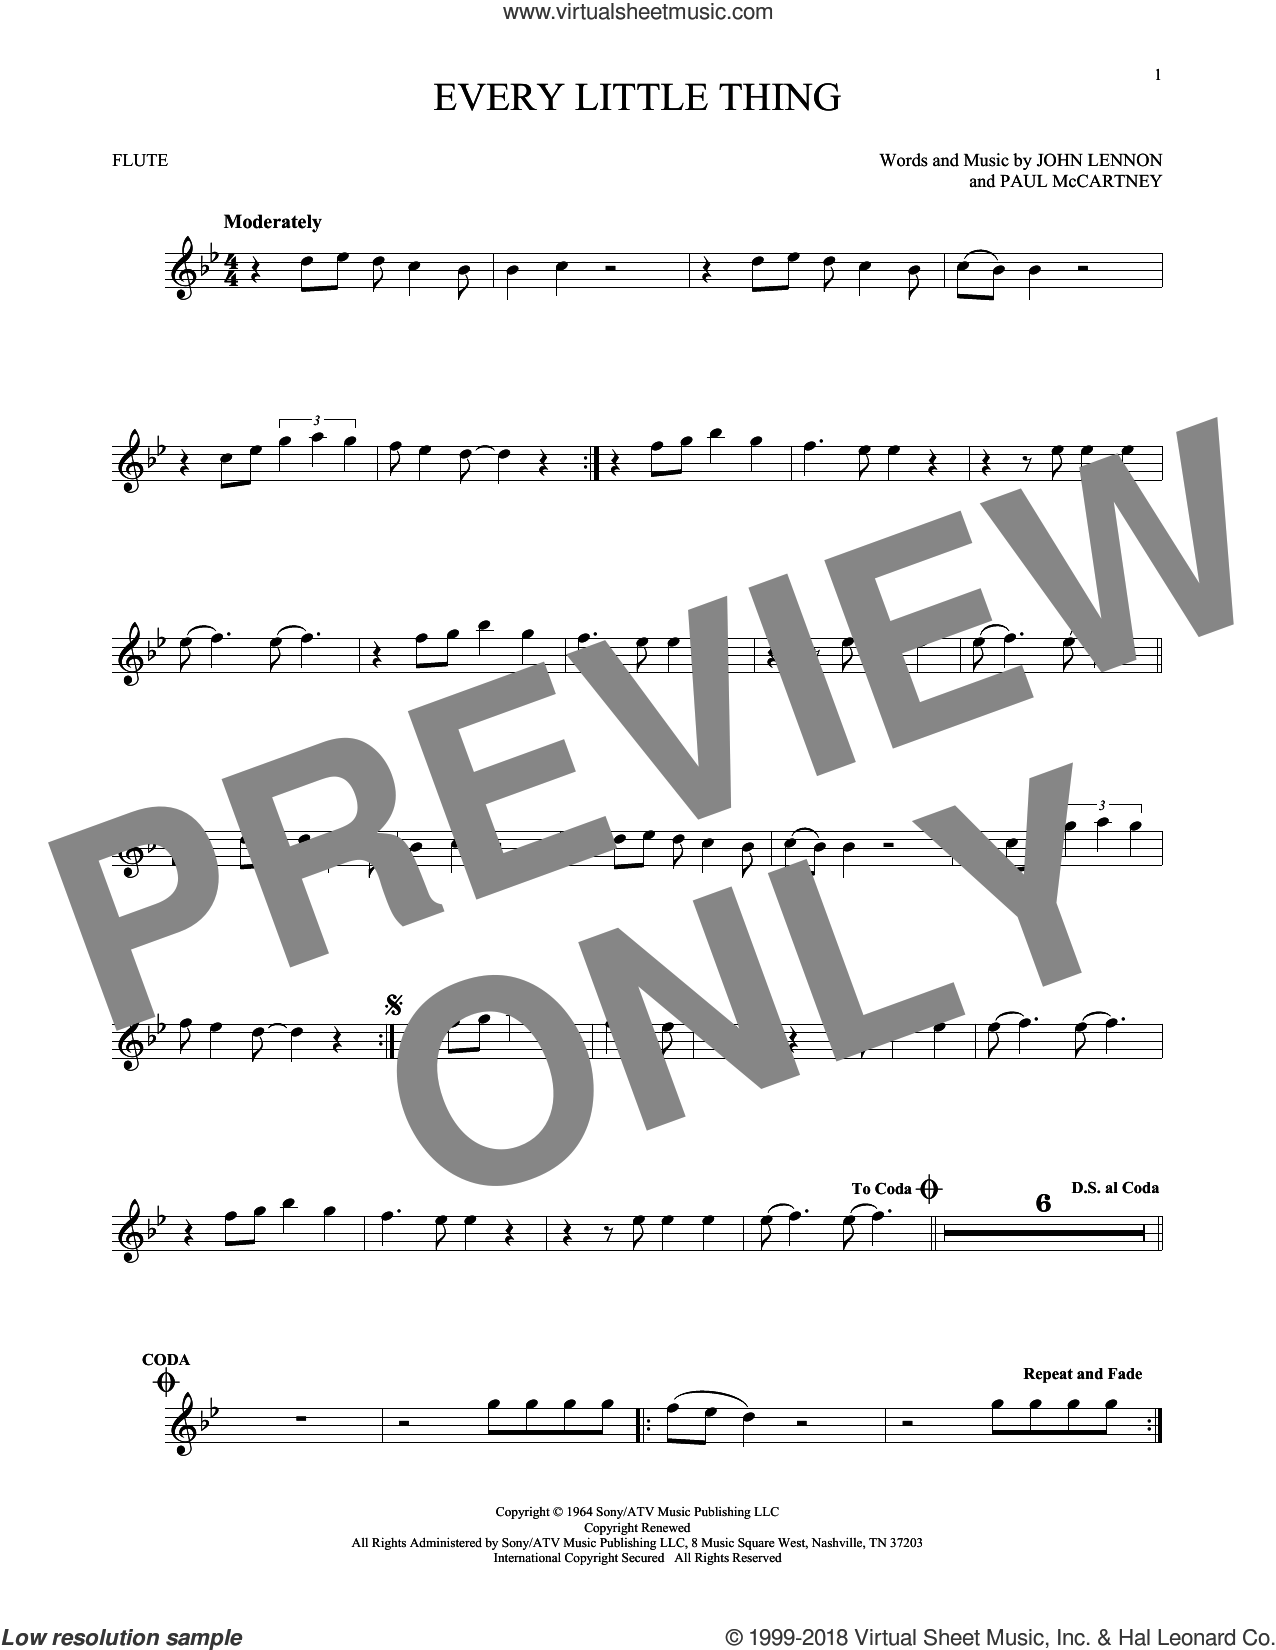 Every Little Thing sheet music for flute solo by The Beatles, John Lennon and Paul McCartney, intermediate flute. Score Image Preview.